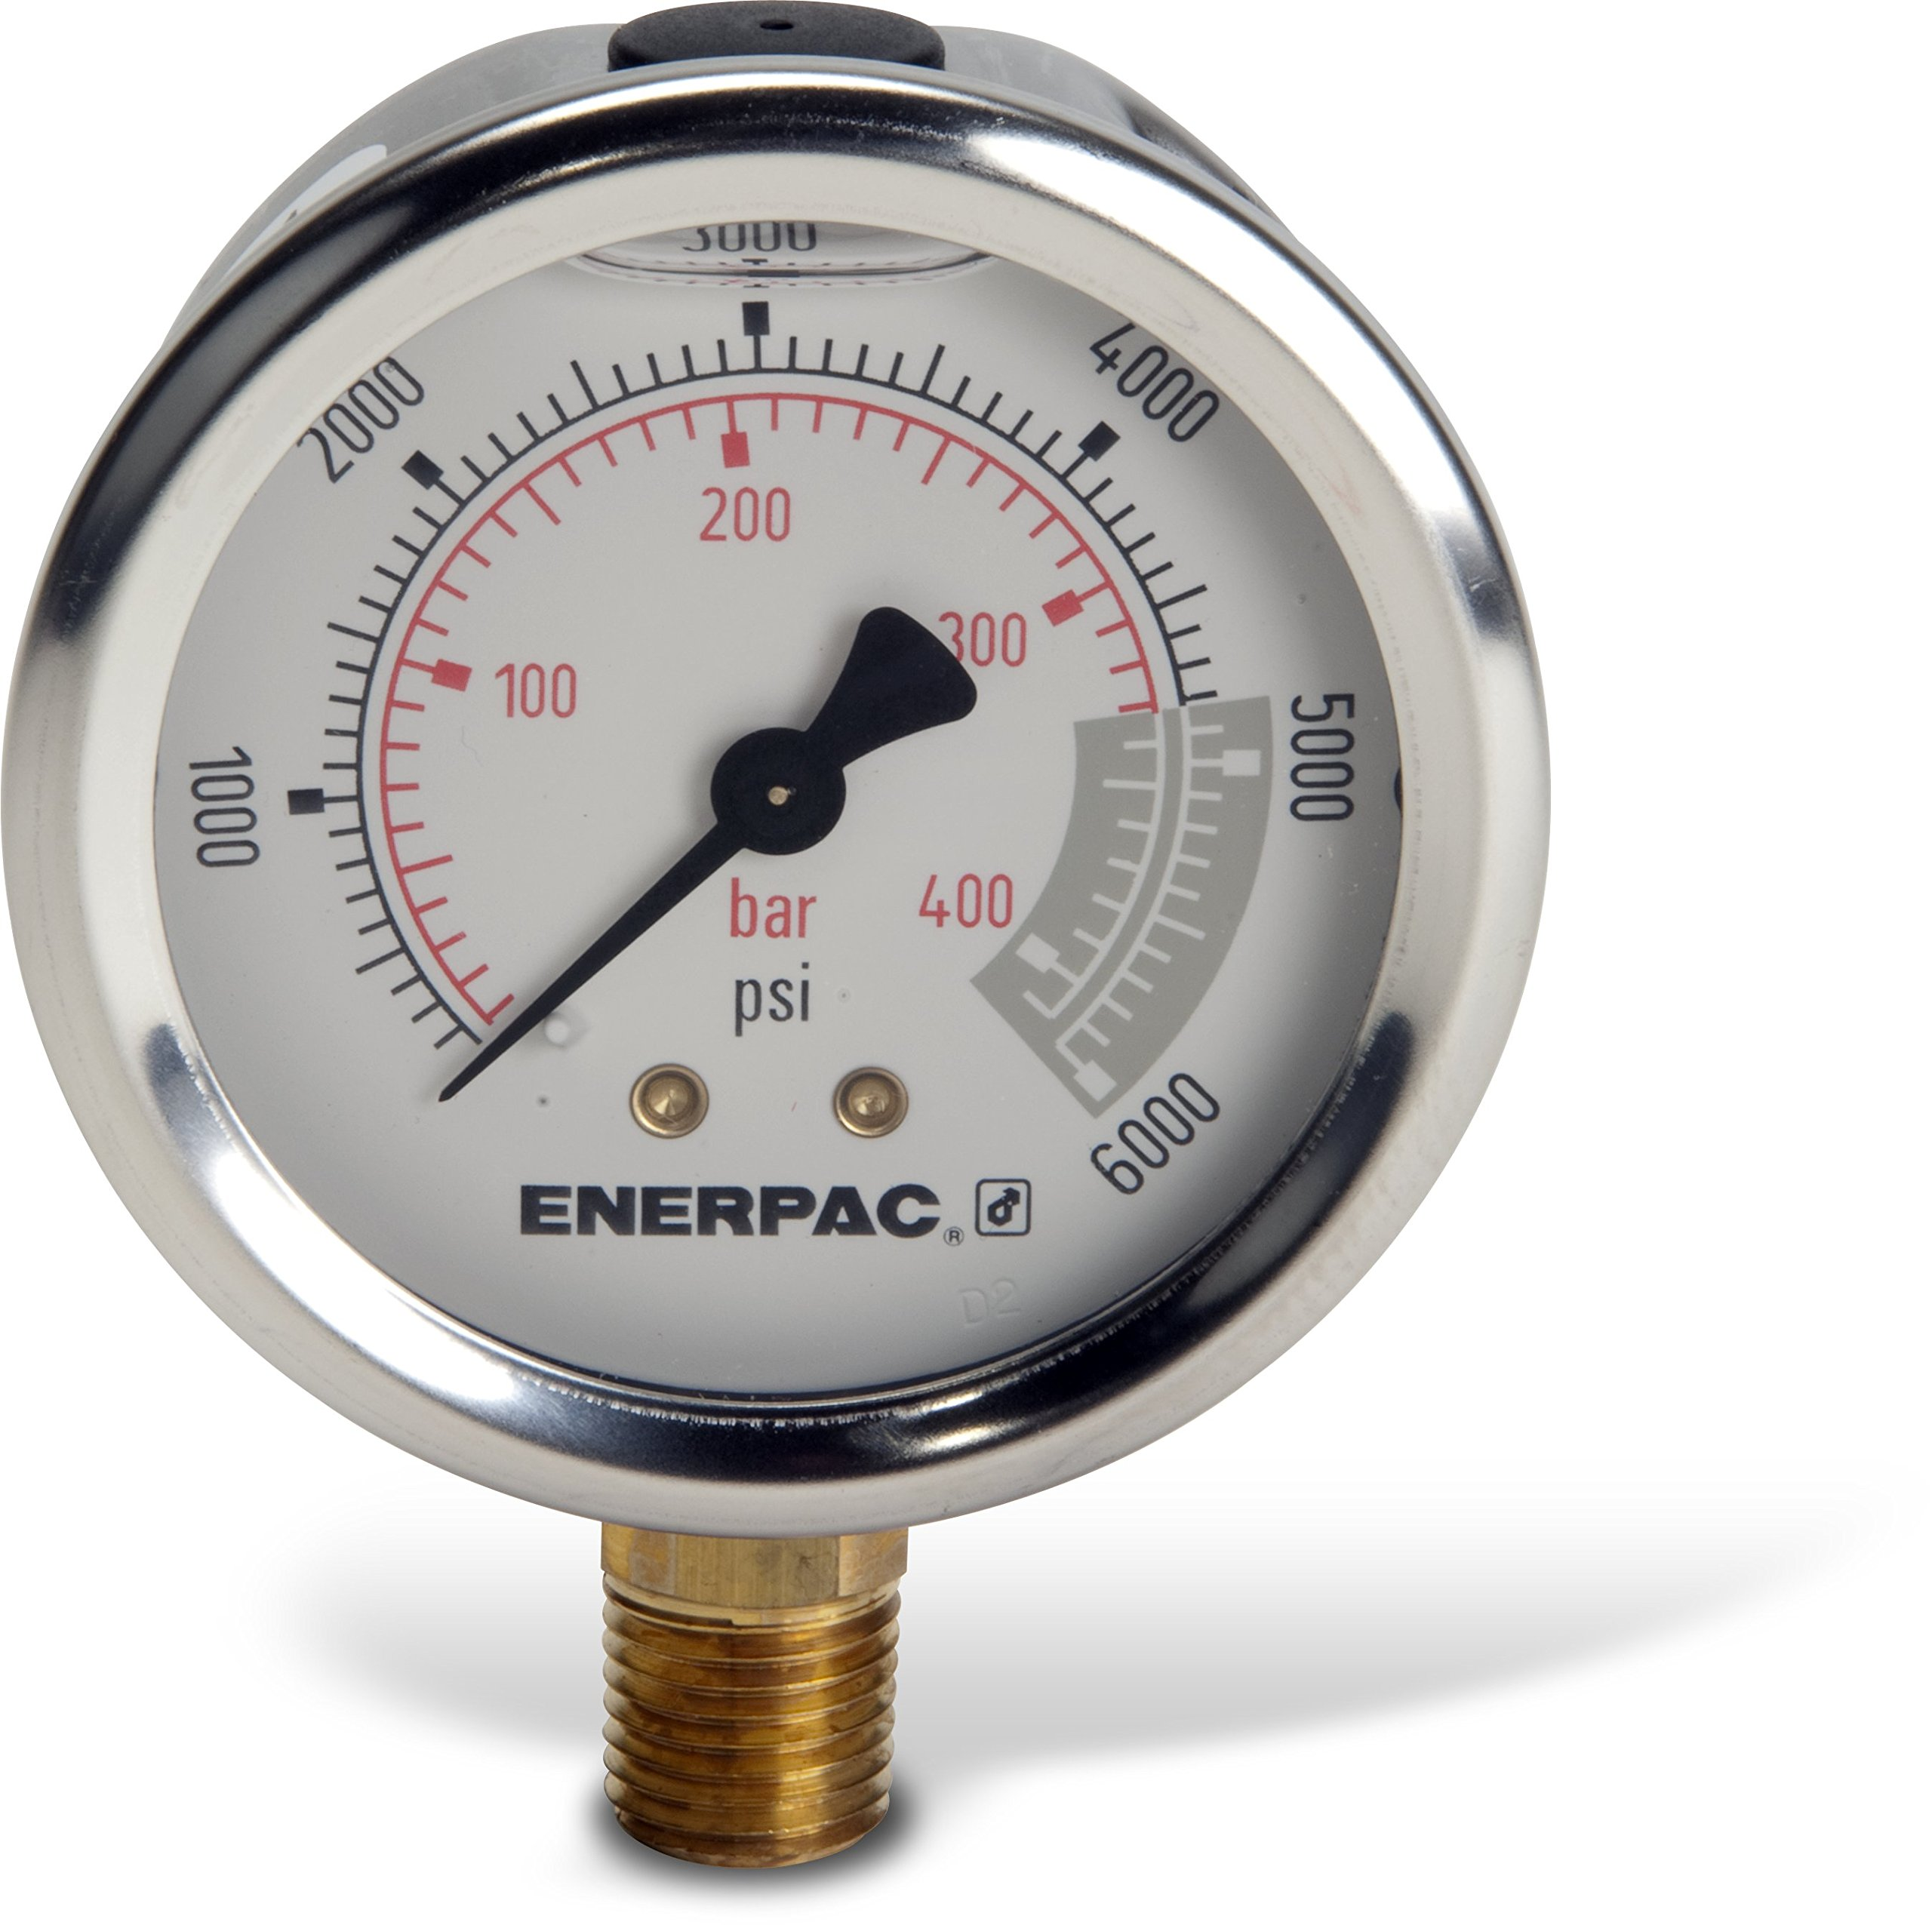 Enerpac G2517L Hydraulic Pressure Gauge with Dual 0 to 6,000 PSI and 0 to 400 Bar Range, 2-1/2''-Dia. Face, 1/4'' NPTF Male, Lower-Mount Connection